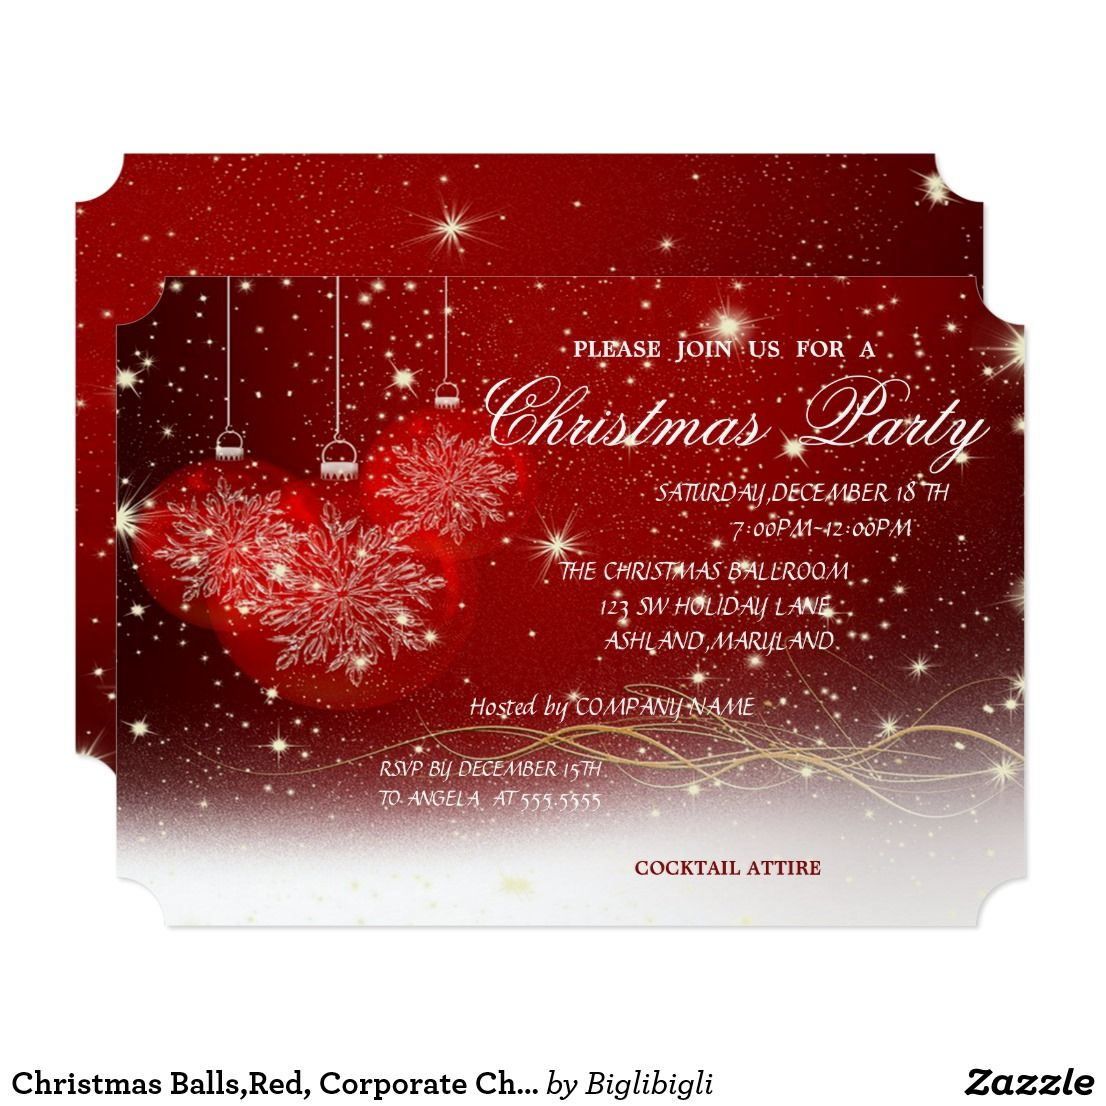 Christmas Balls,Red, Corporate Christmas Party Invitation in 2018 ...